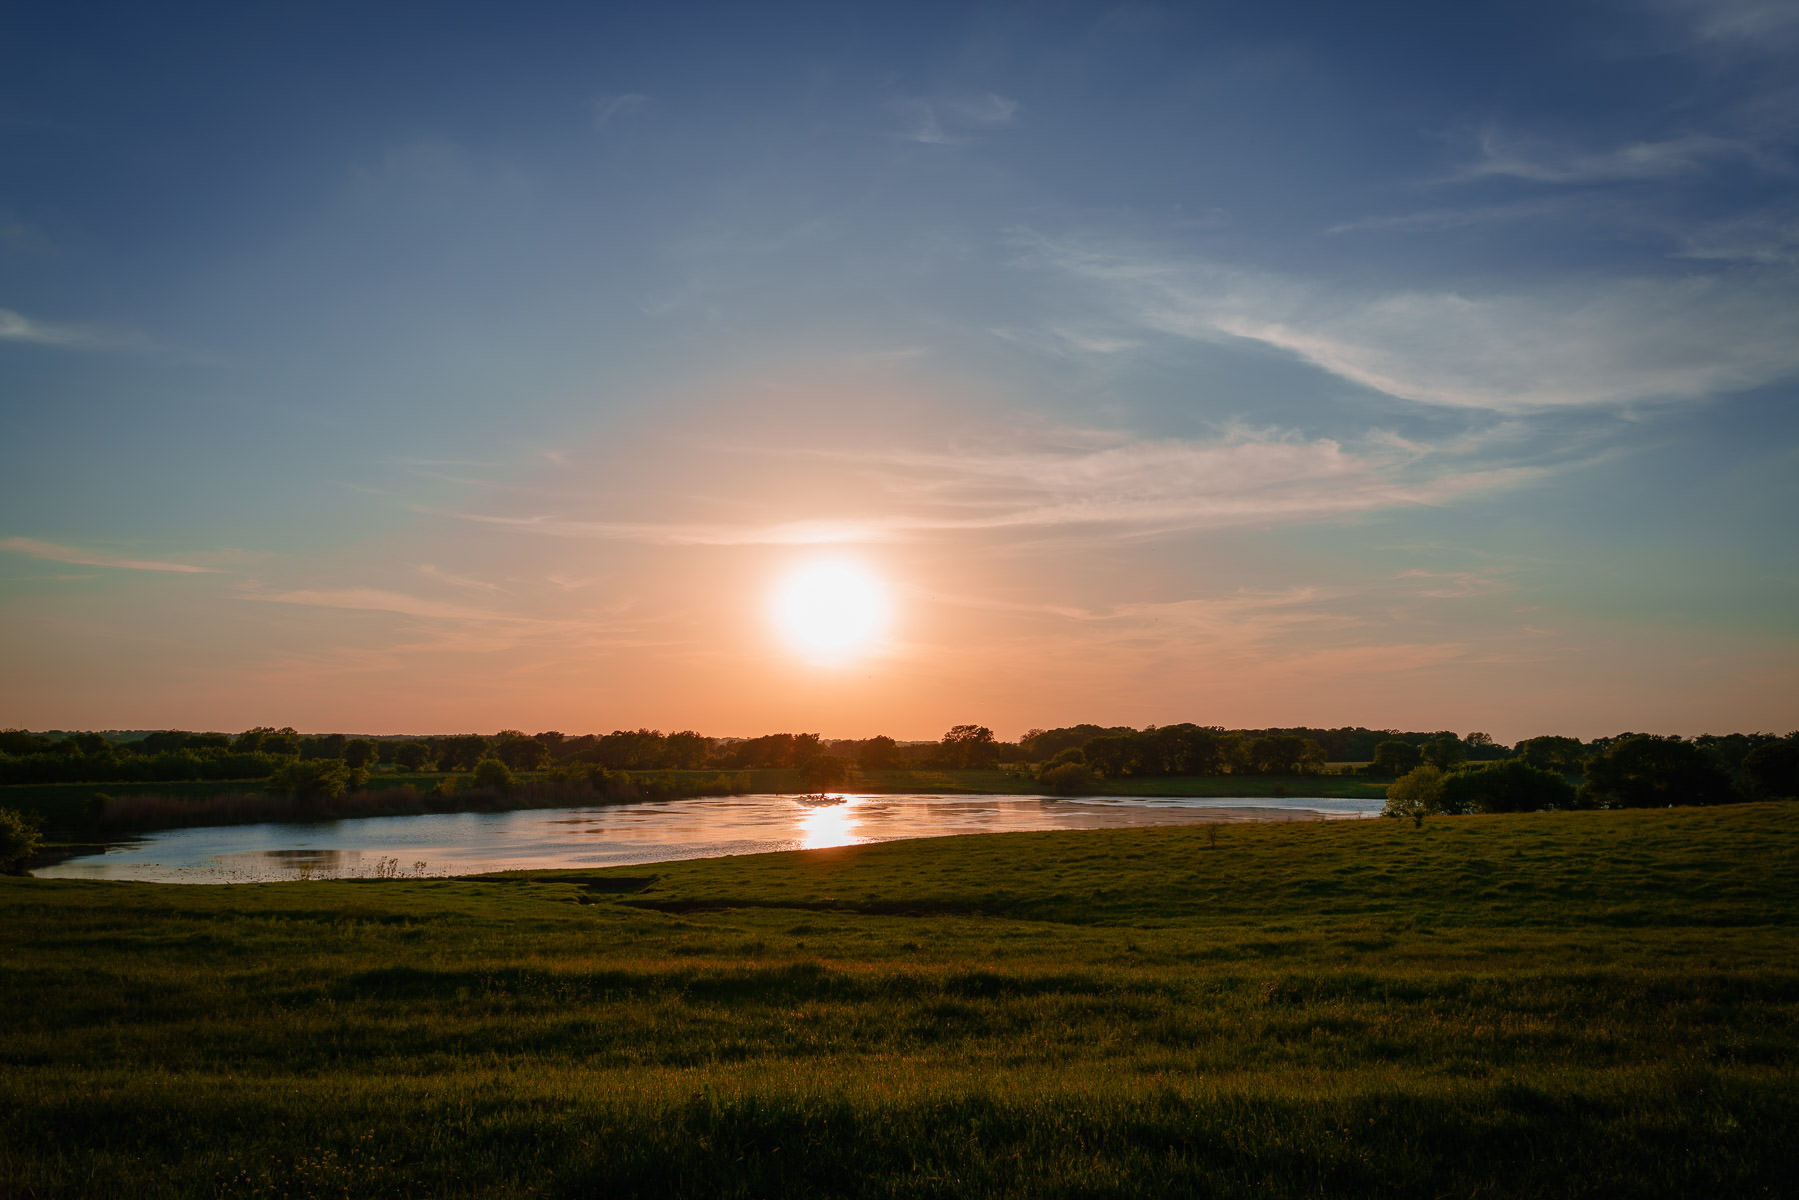 The sun sets on a small lake near the tiny North Texas town of Chambersville.